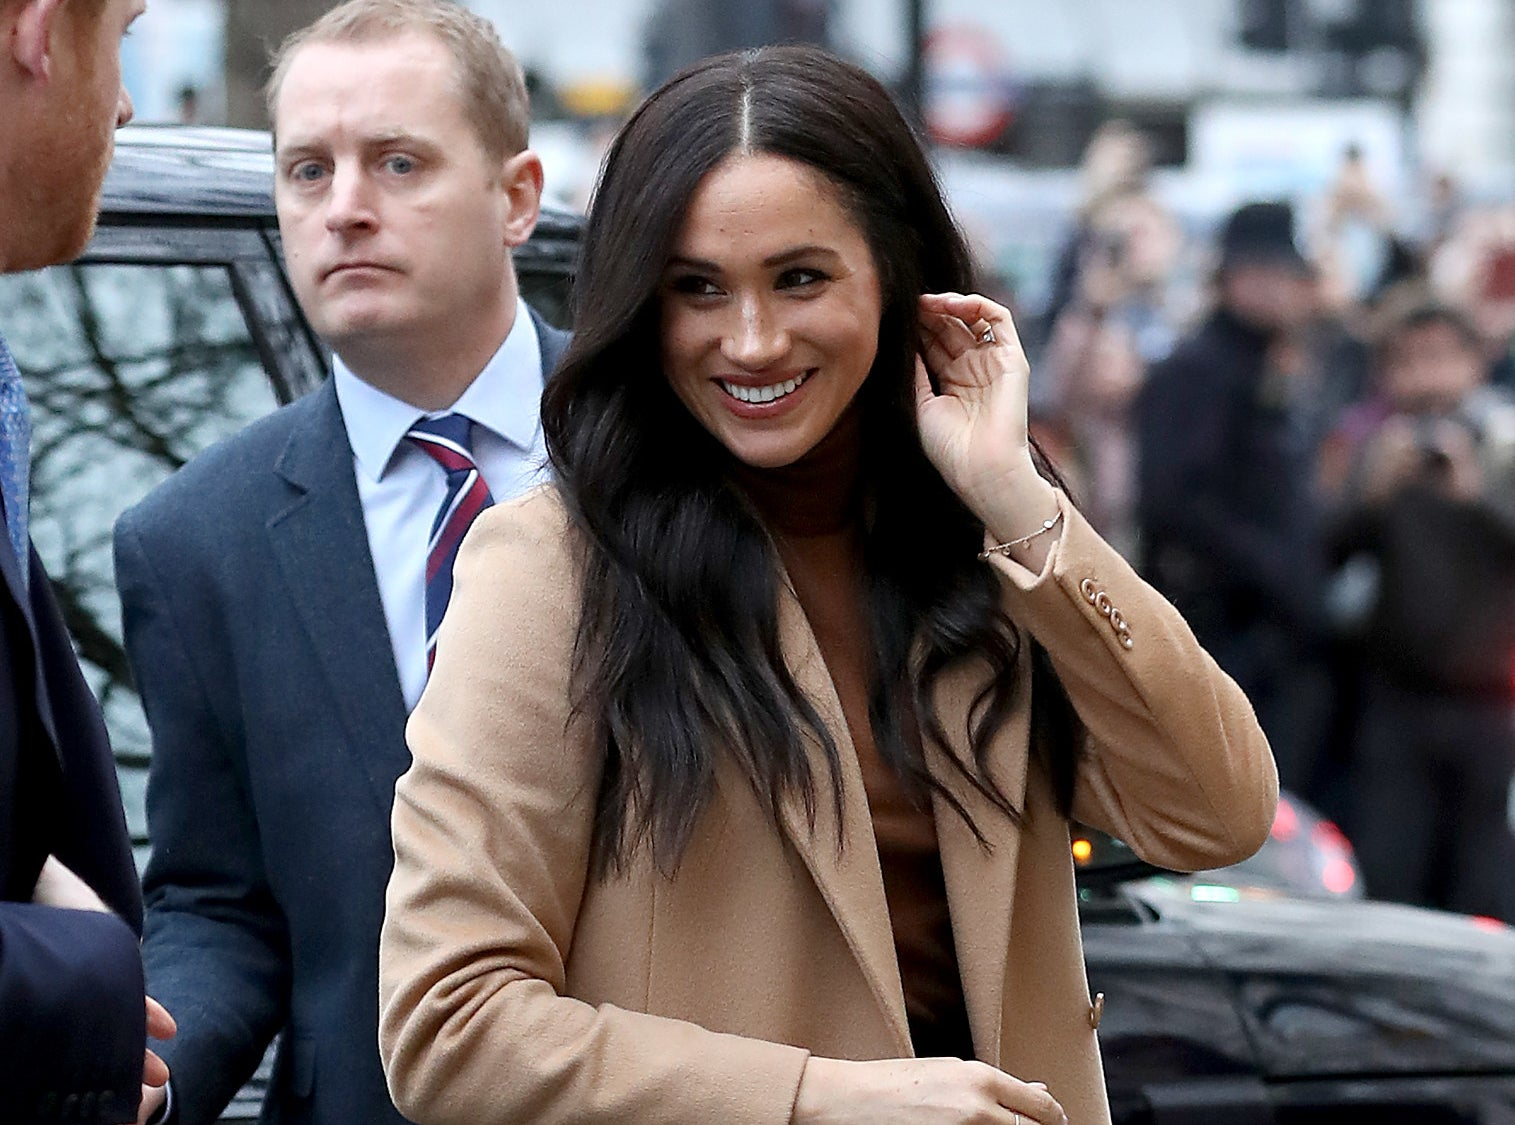 Meghan smiles in a beige wool coat on the way to an event while a crowd stands behind her